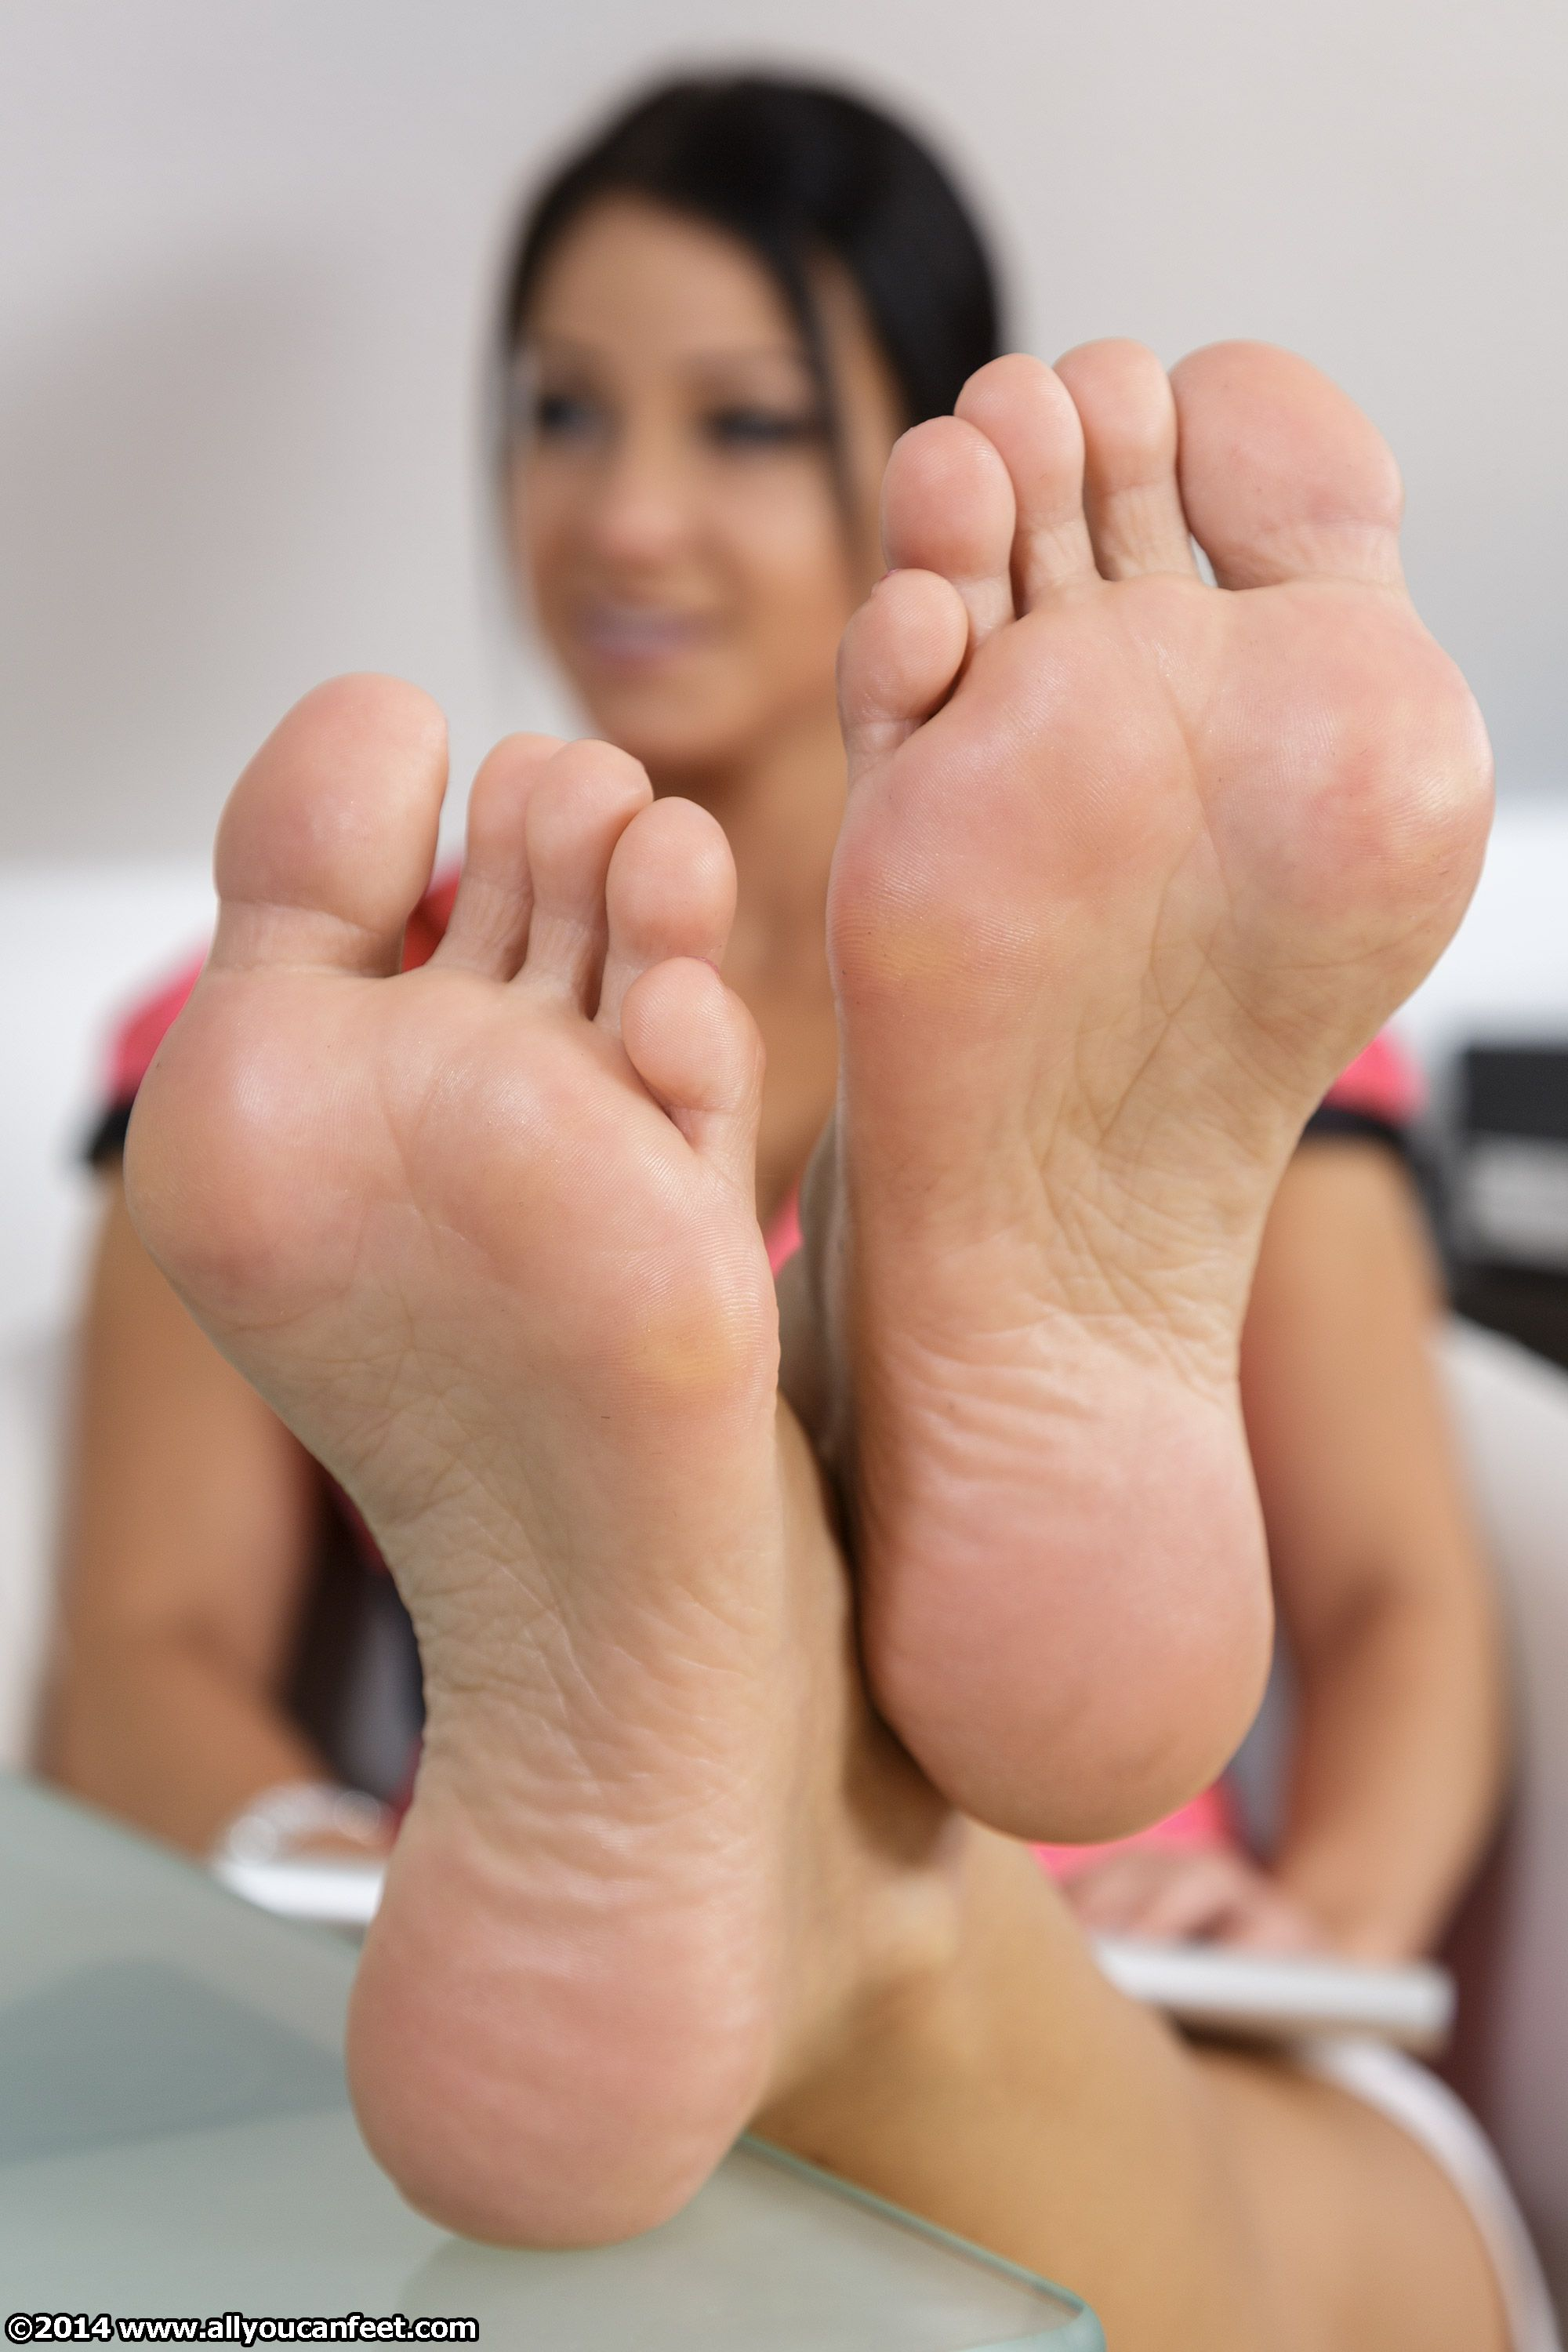 Pin On Feet-9883